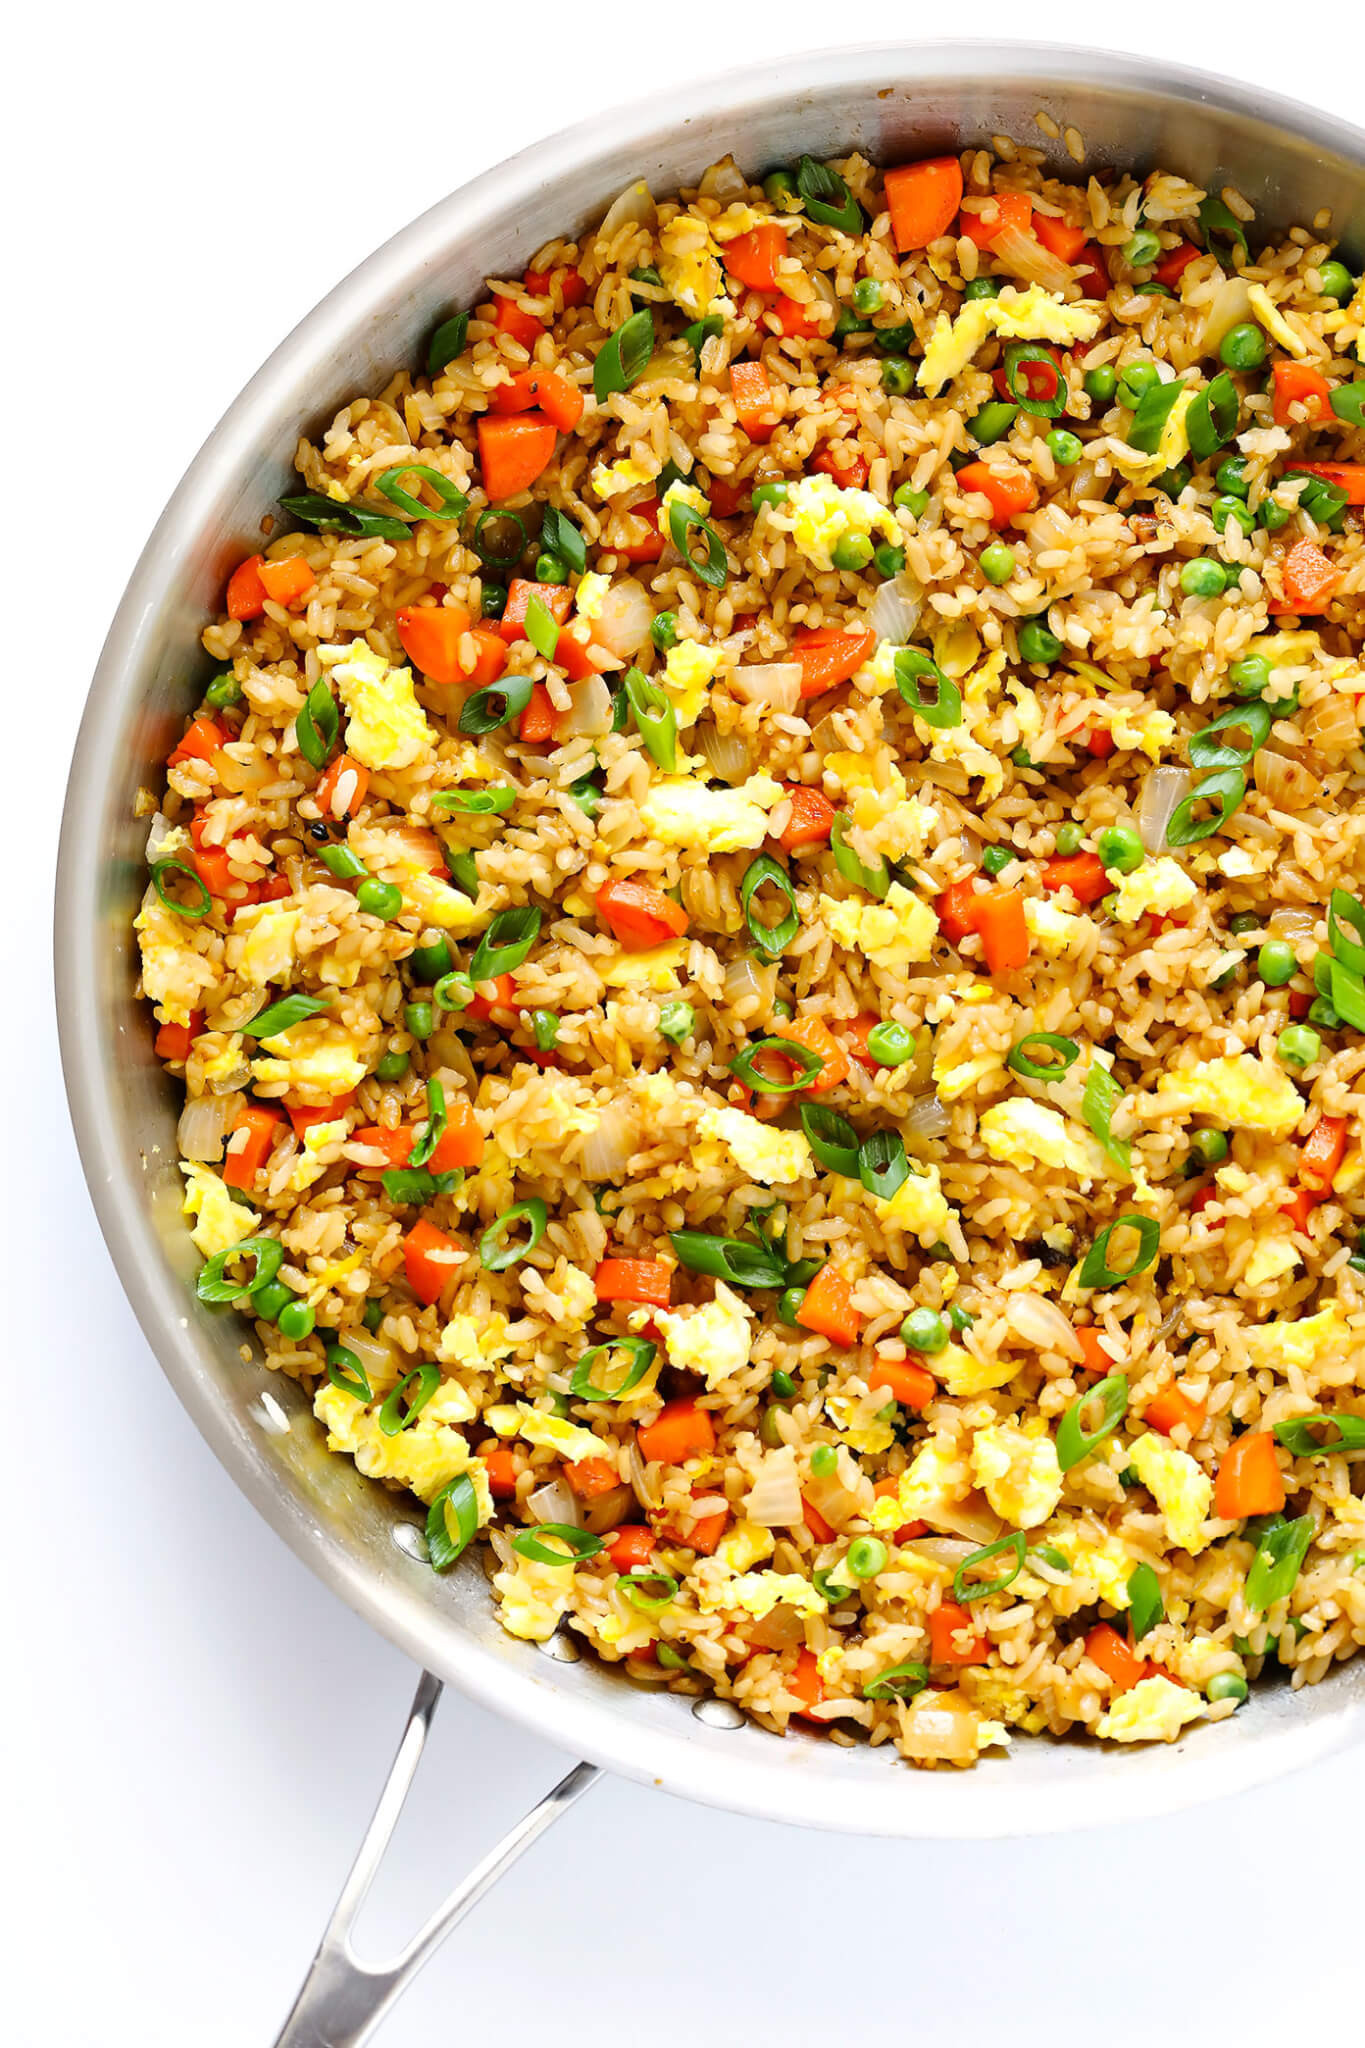 Fried Rice Recipie  Fried Rice Gimme Some Oven